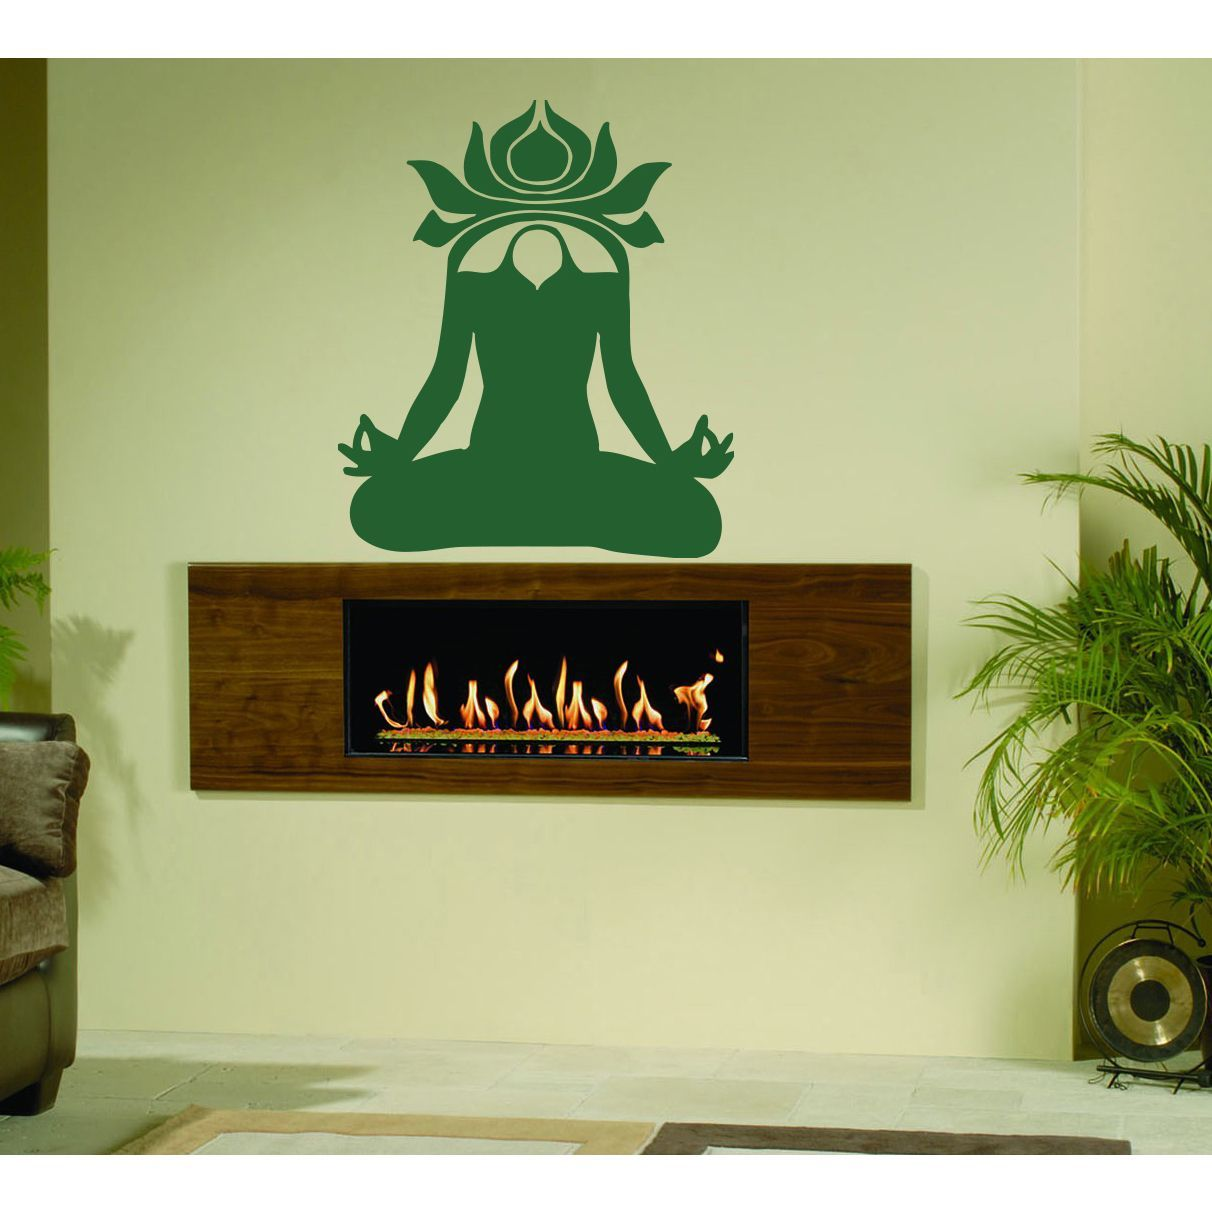 Excellent Lotus Flower Wall Art Pictures Inspiration - The Wall Art ...